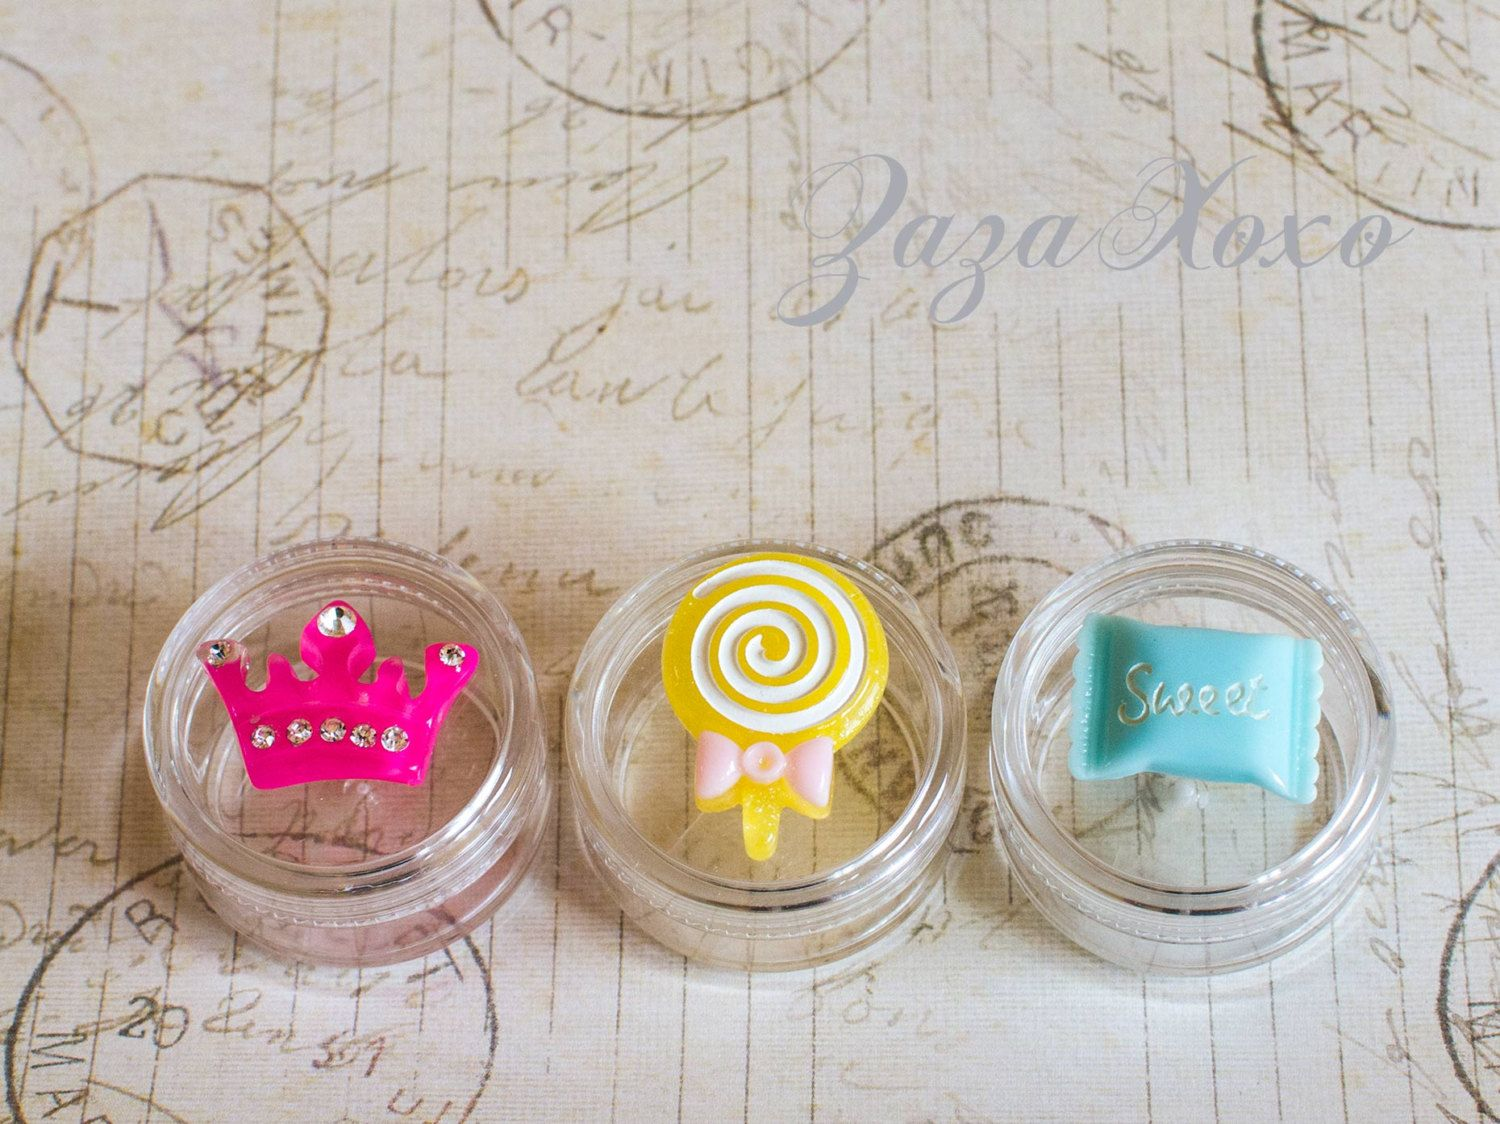 Adorable 10g Empty Cosmetic Jar, Colorful Candy Jewelry Container, Princess Party Favor, Vanity Accent, DIY Make Up Container, Set of 3 - pinned by pin4etsy.com